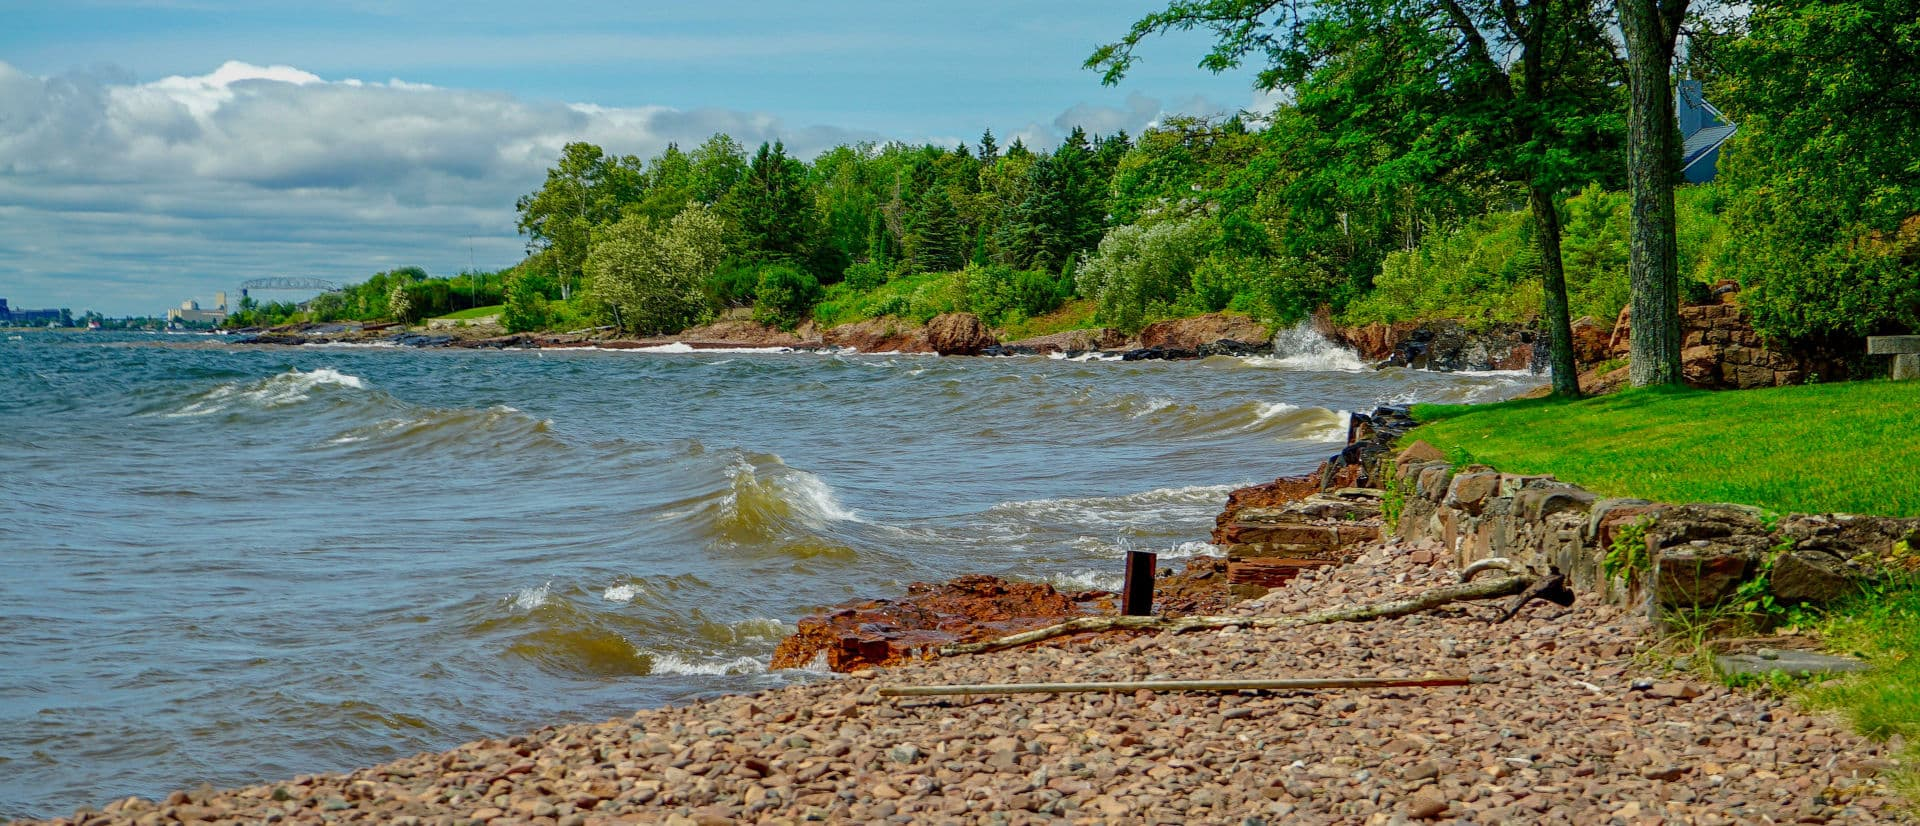 Beautiful scenic shore of Lake Superior in Duluth Minnesota in the summertime with the sun shining bright with blue skies